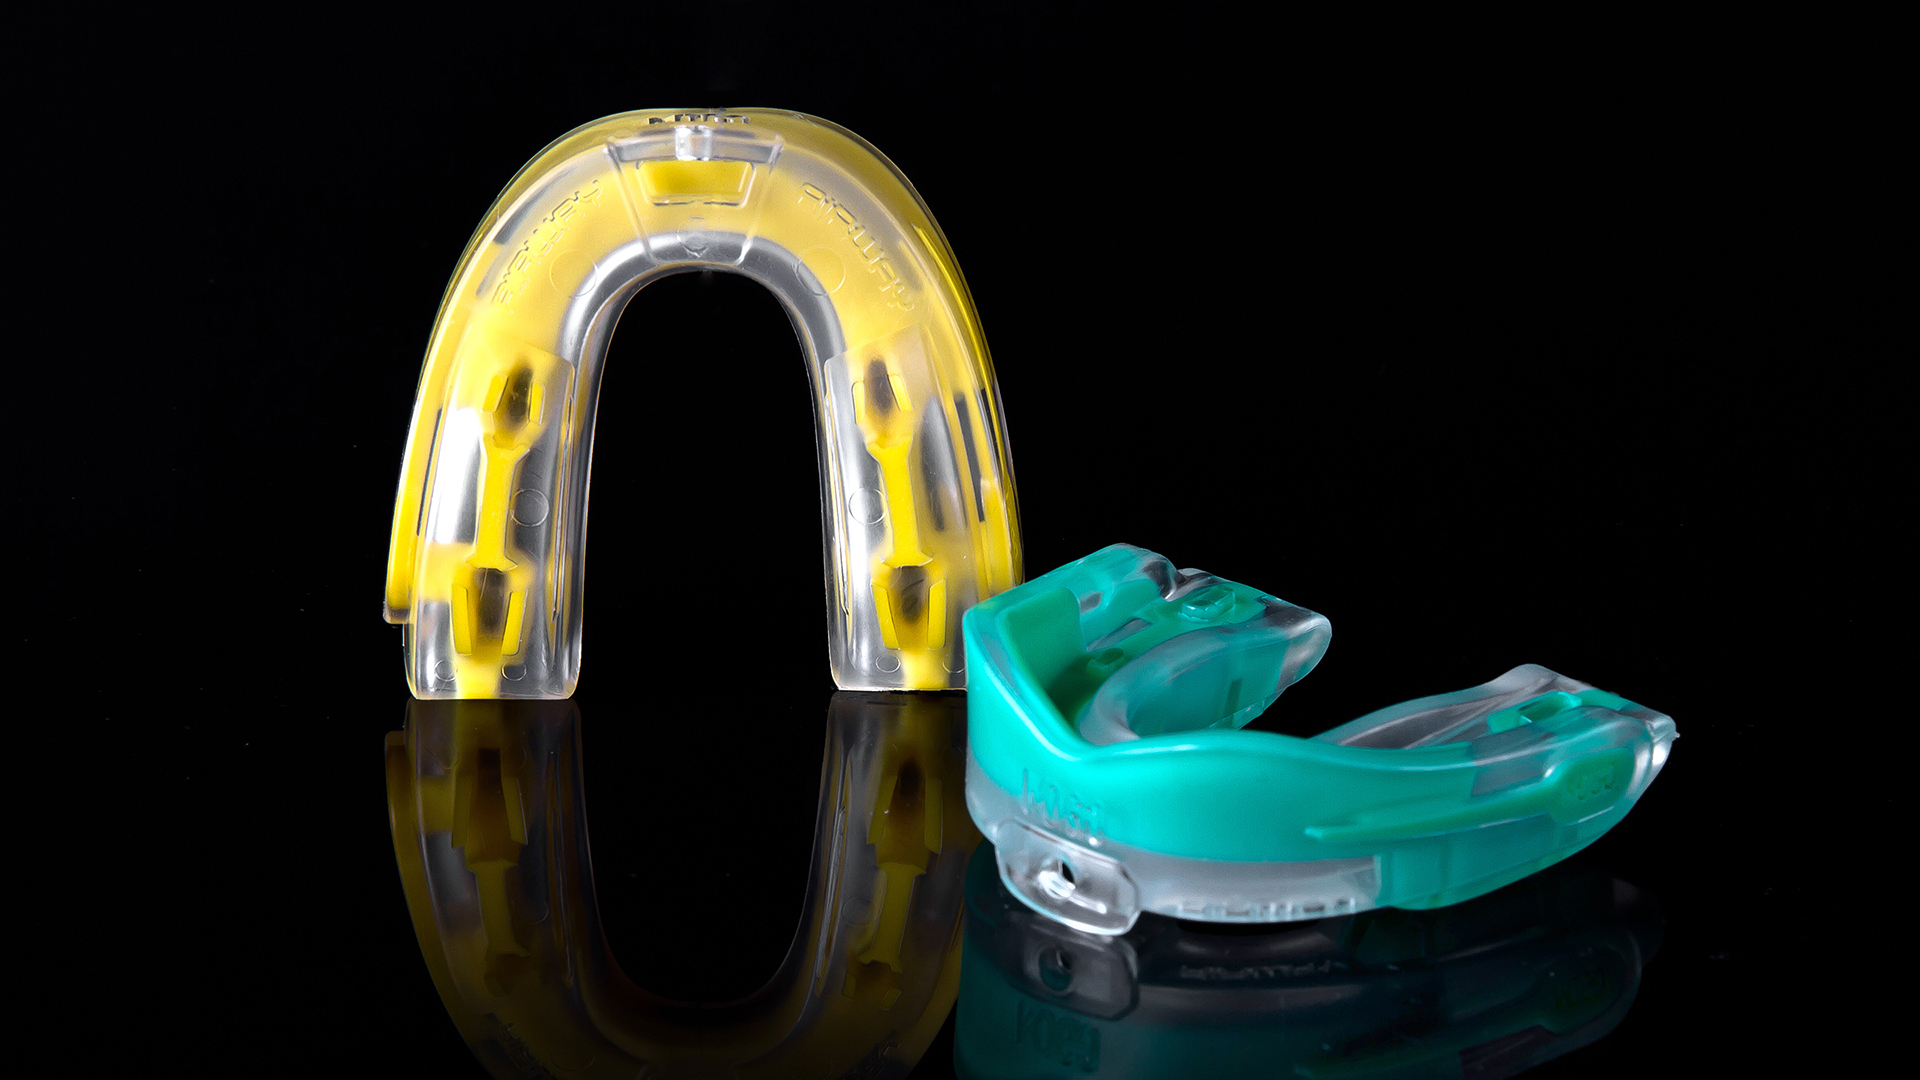 priority_designs_mouth_guard_sporting_goods_design_004